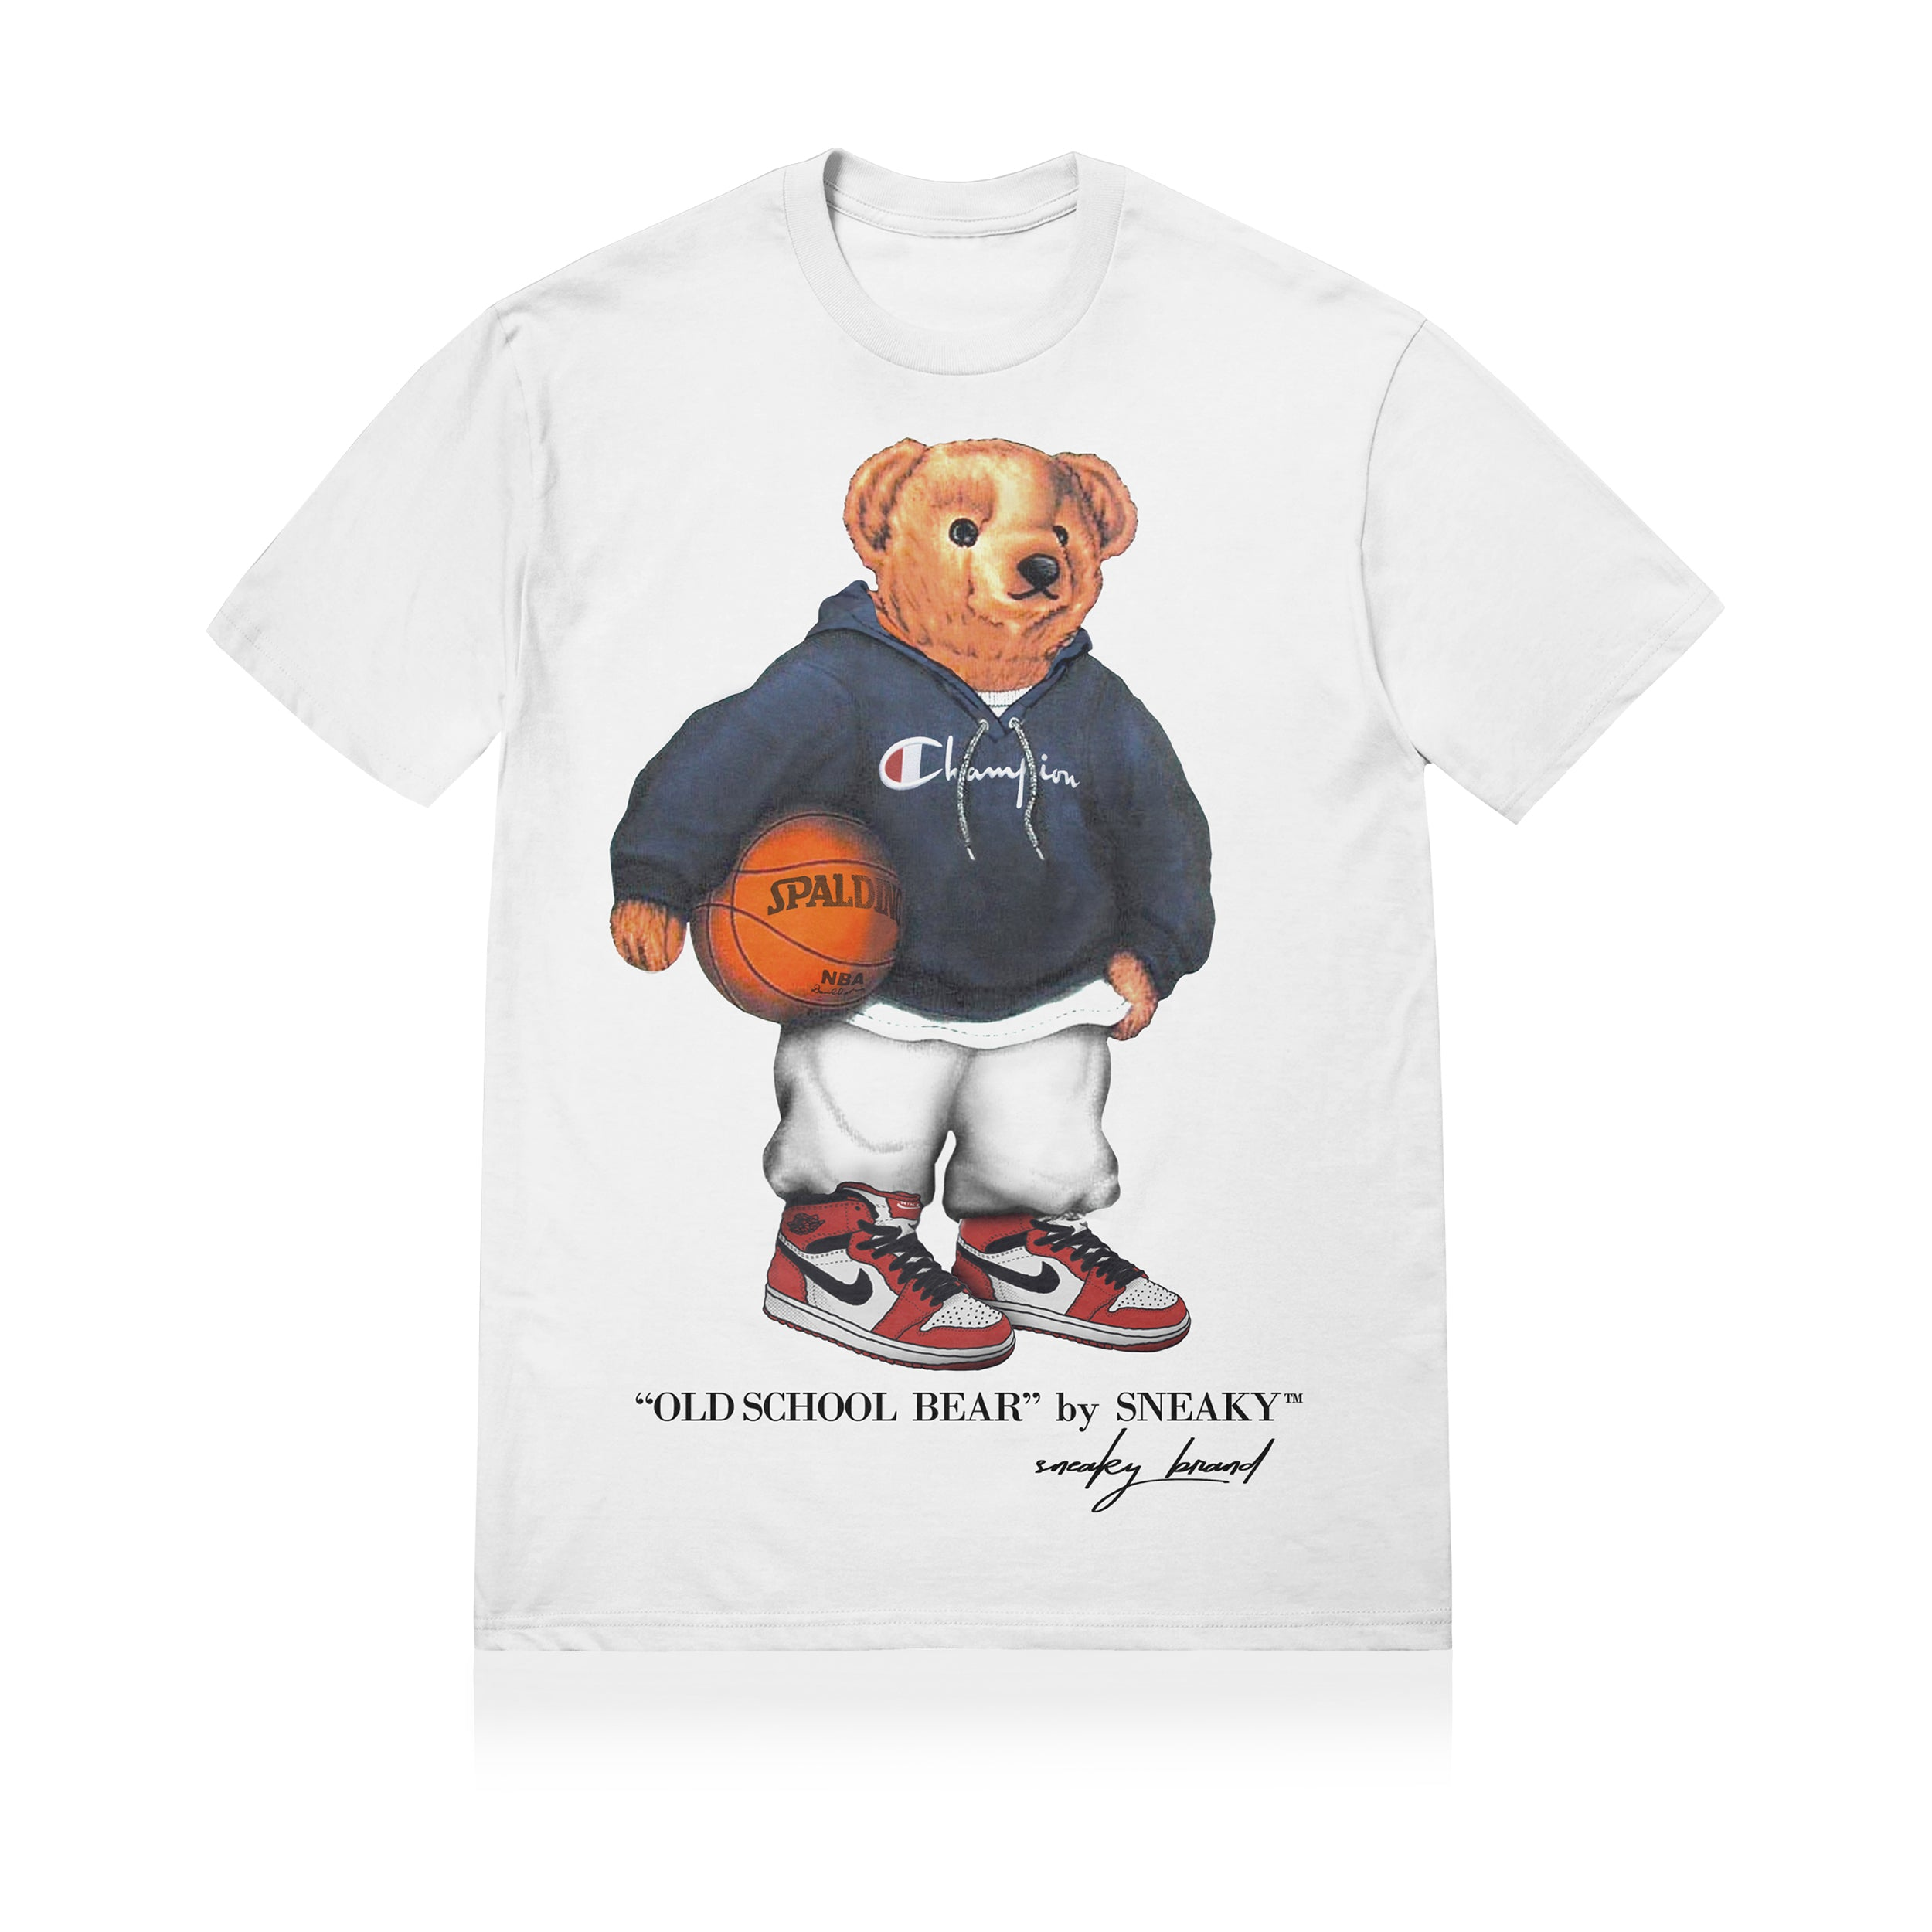 Sneaky Old School Bear Unisex Adult T-shirt White